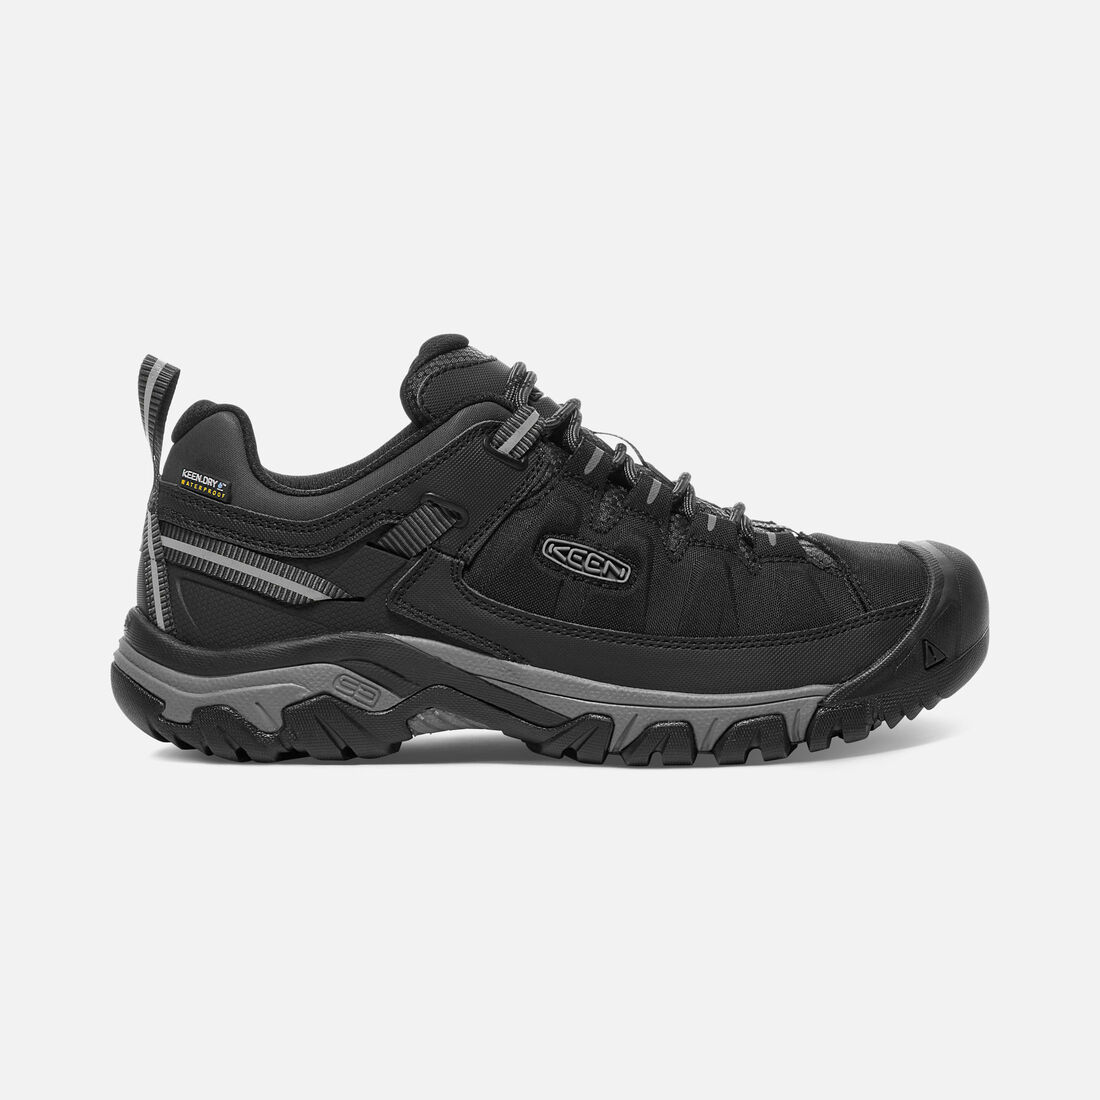 Men's TARGHEE EXP Waterproof in Black/Steel Grey - large view.